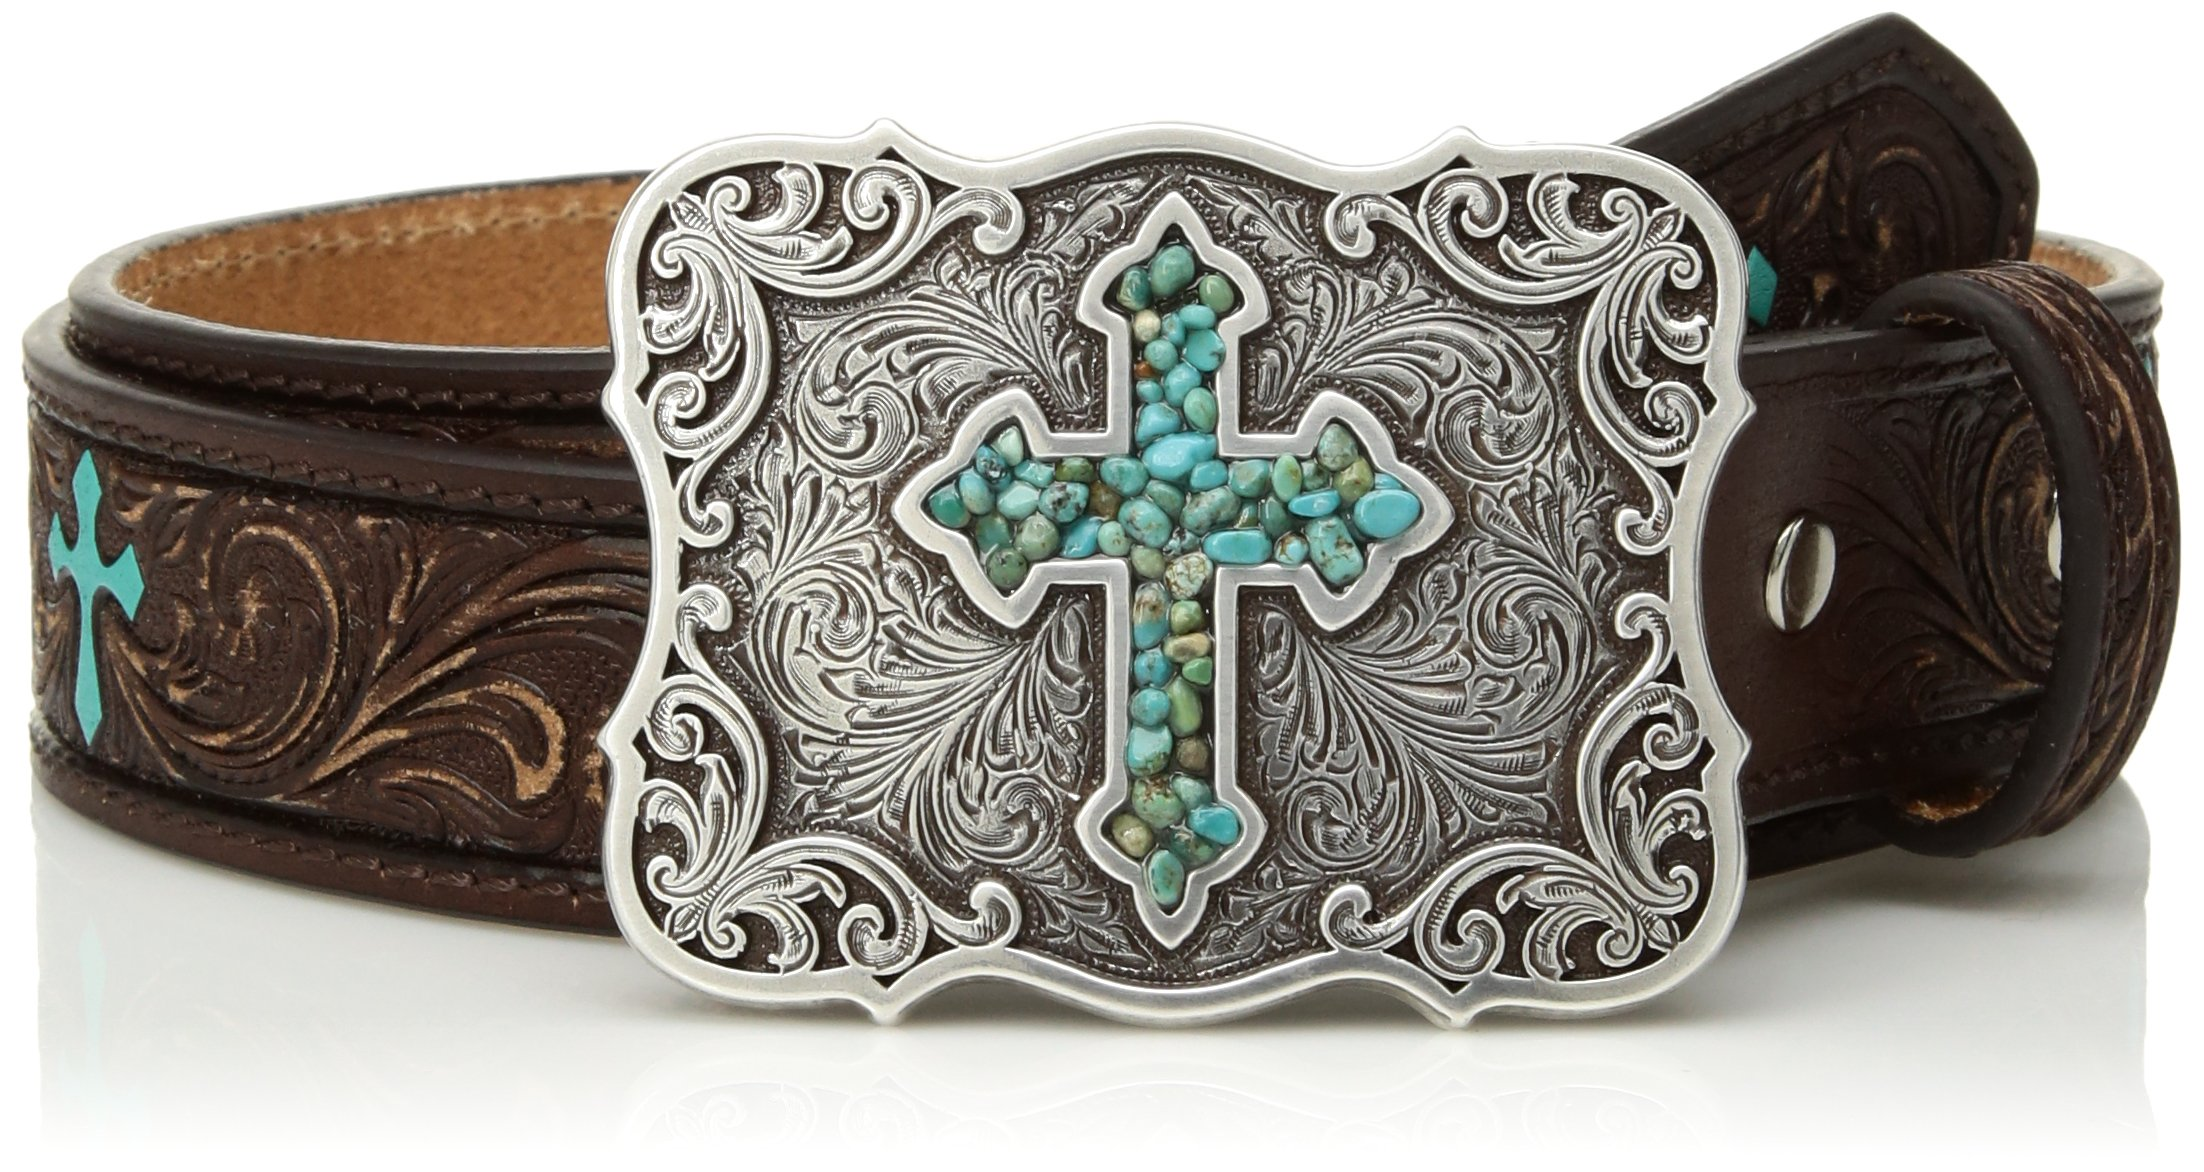 Nocona Girl's Embossed Painted Crosses Belt, Brown, 28